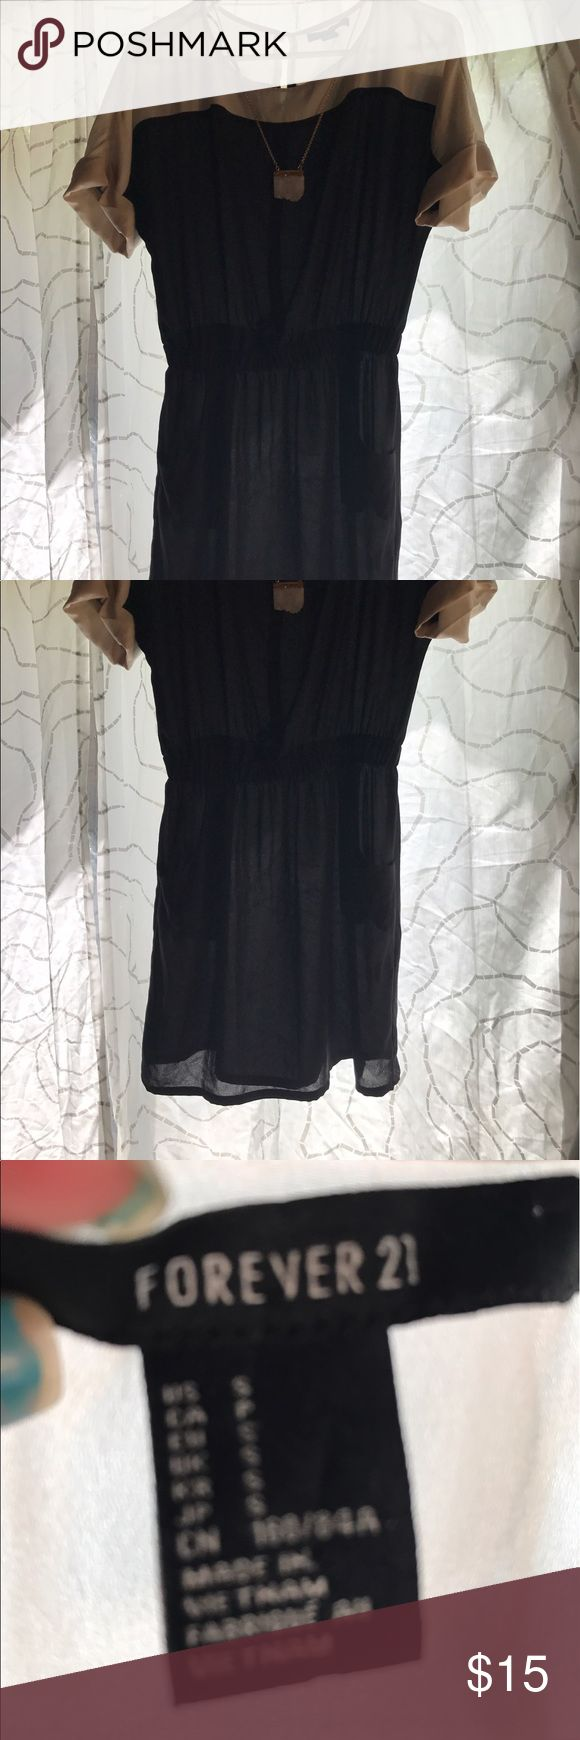 Forever 21 dress Black and ivory with a eye hole closure in back. Sheer material would require a camp or slip. This dress has pockets! Forever 21 Dresses Mini